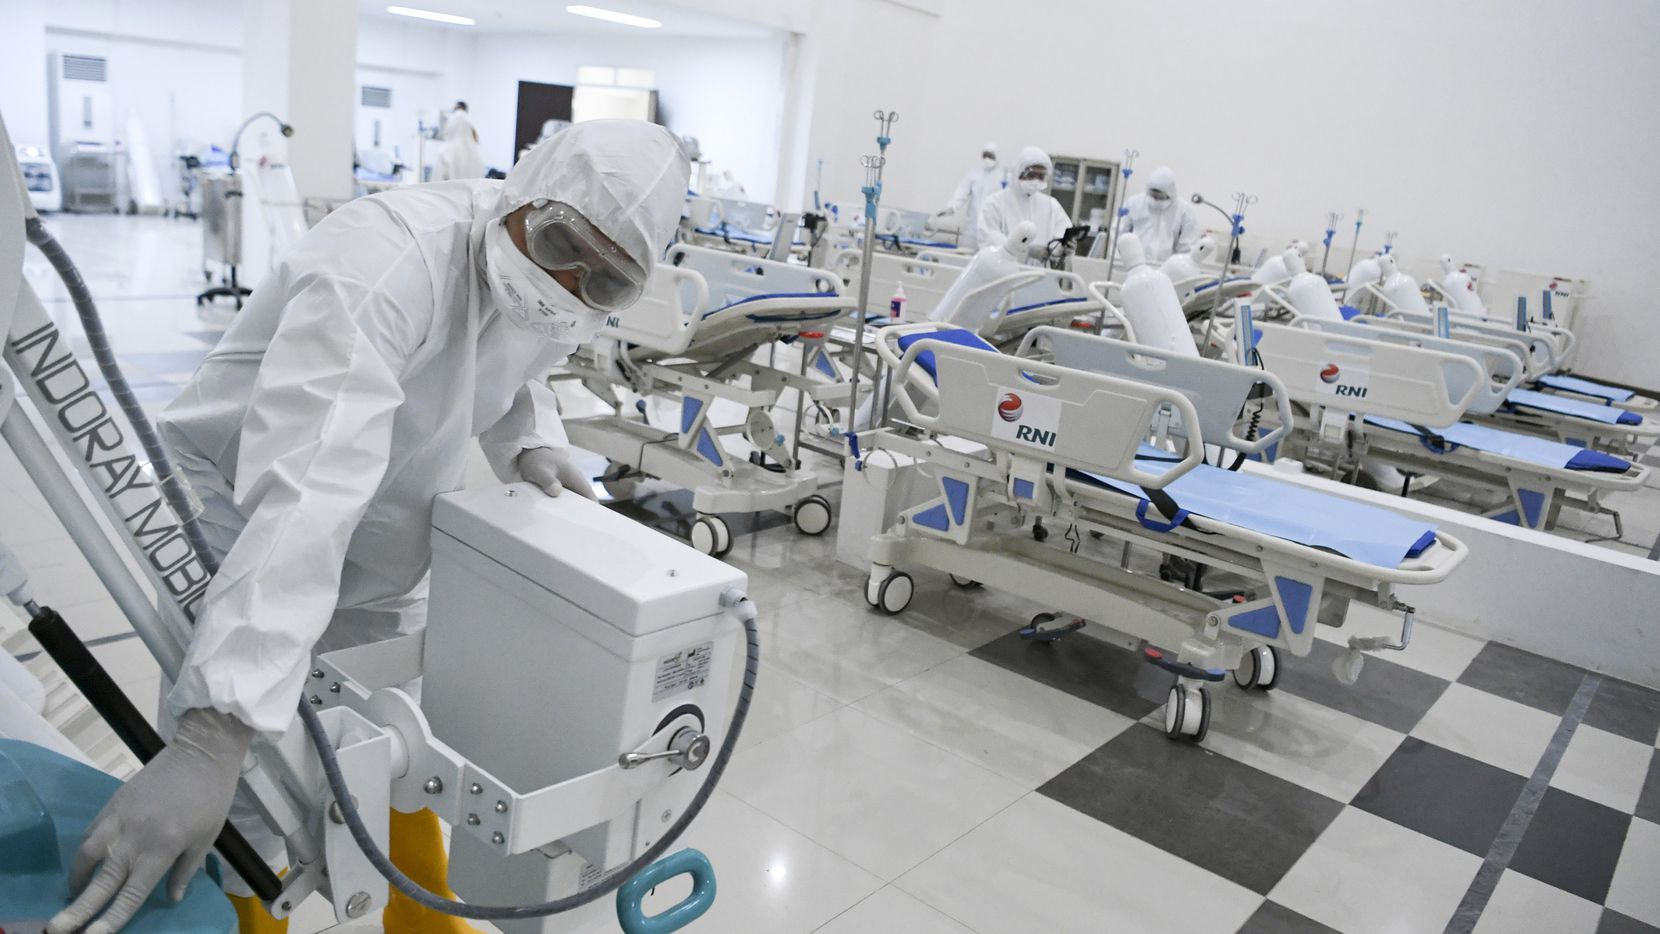 Staff inspect medical equipments at an emergency hospital set up amid the new coronavirus outbreak in Jakarta, Indonesia, on Monday.